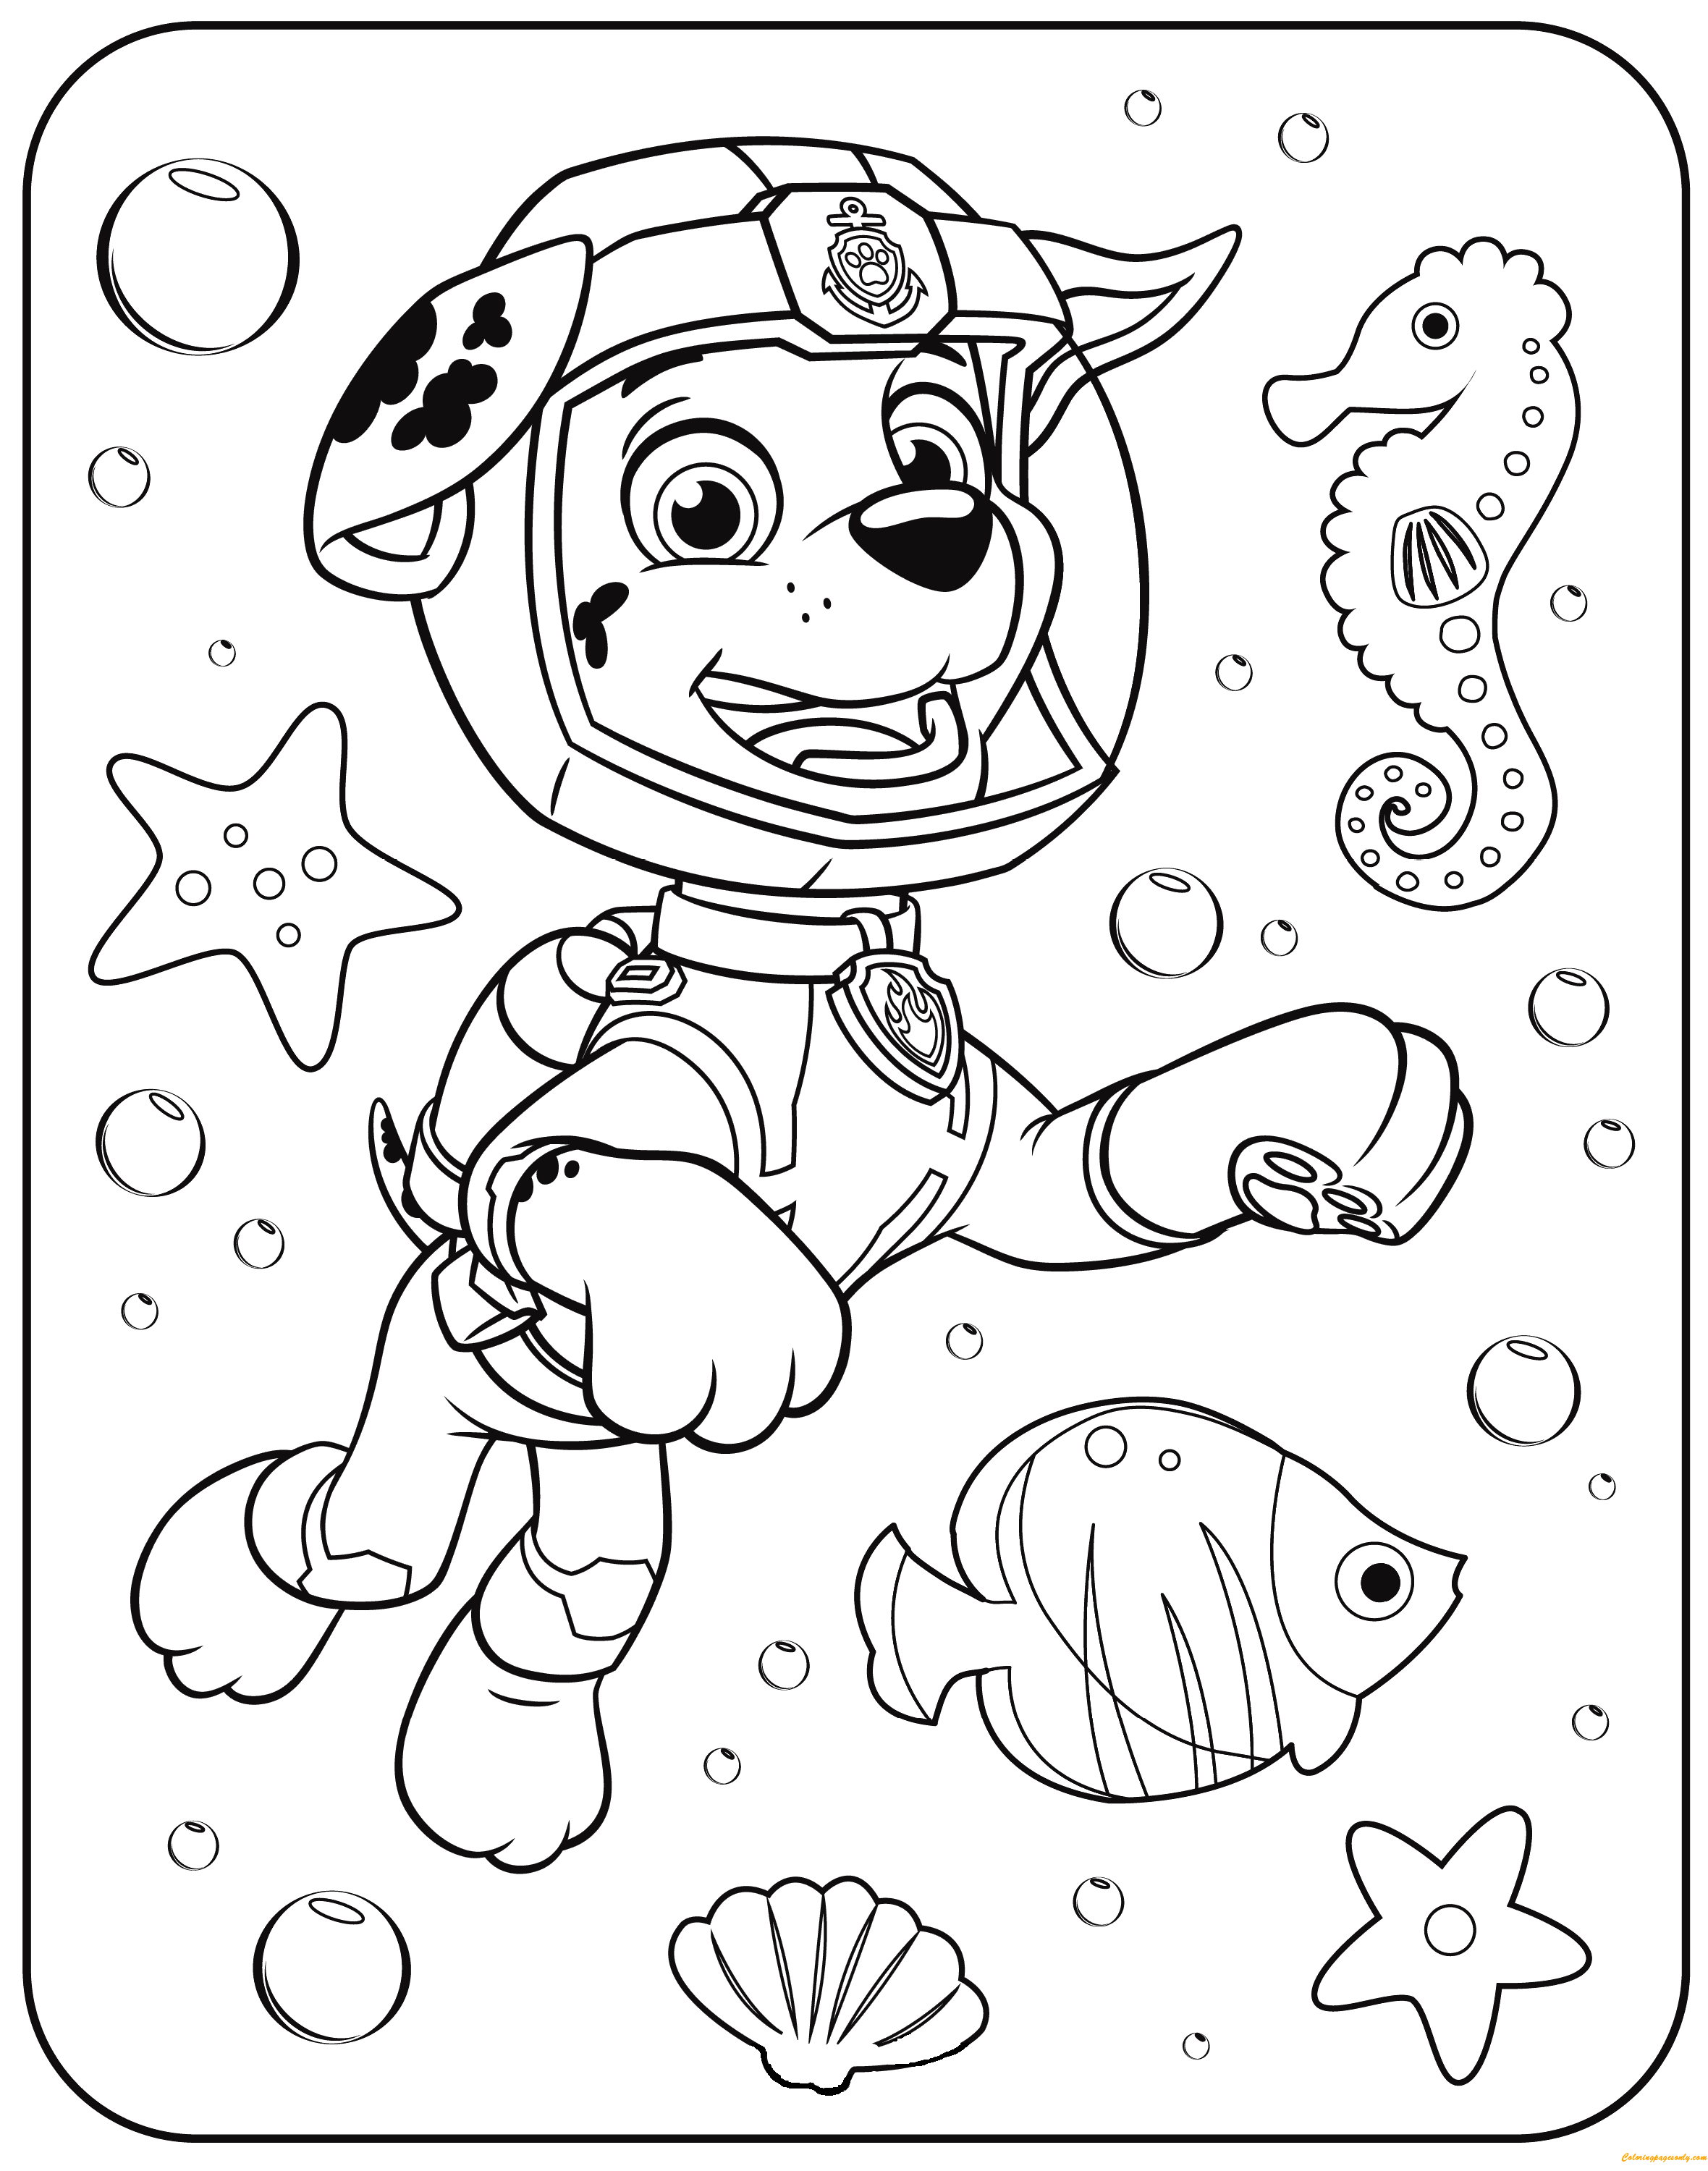 Paw Patrol Marshall Underwater Coloring Page Free Coloring Pages